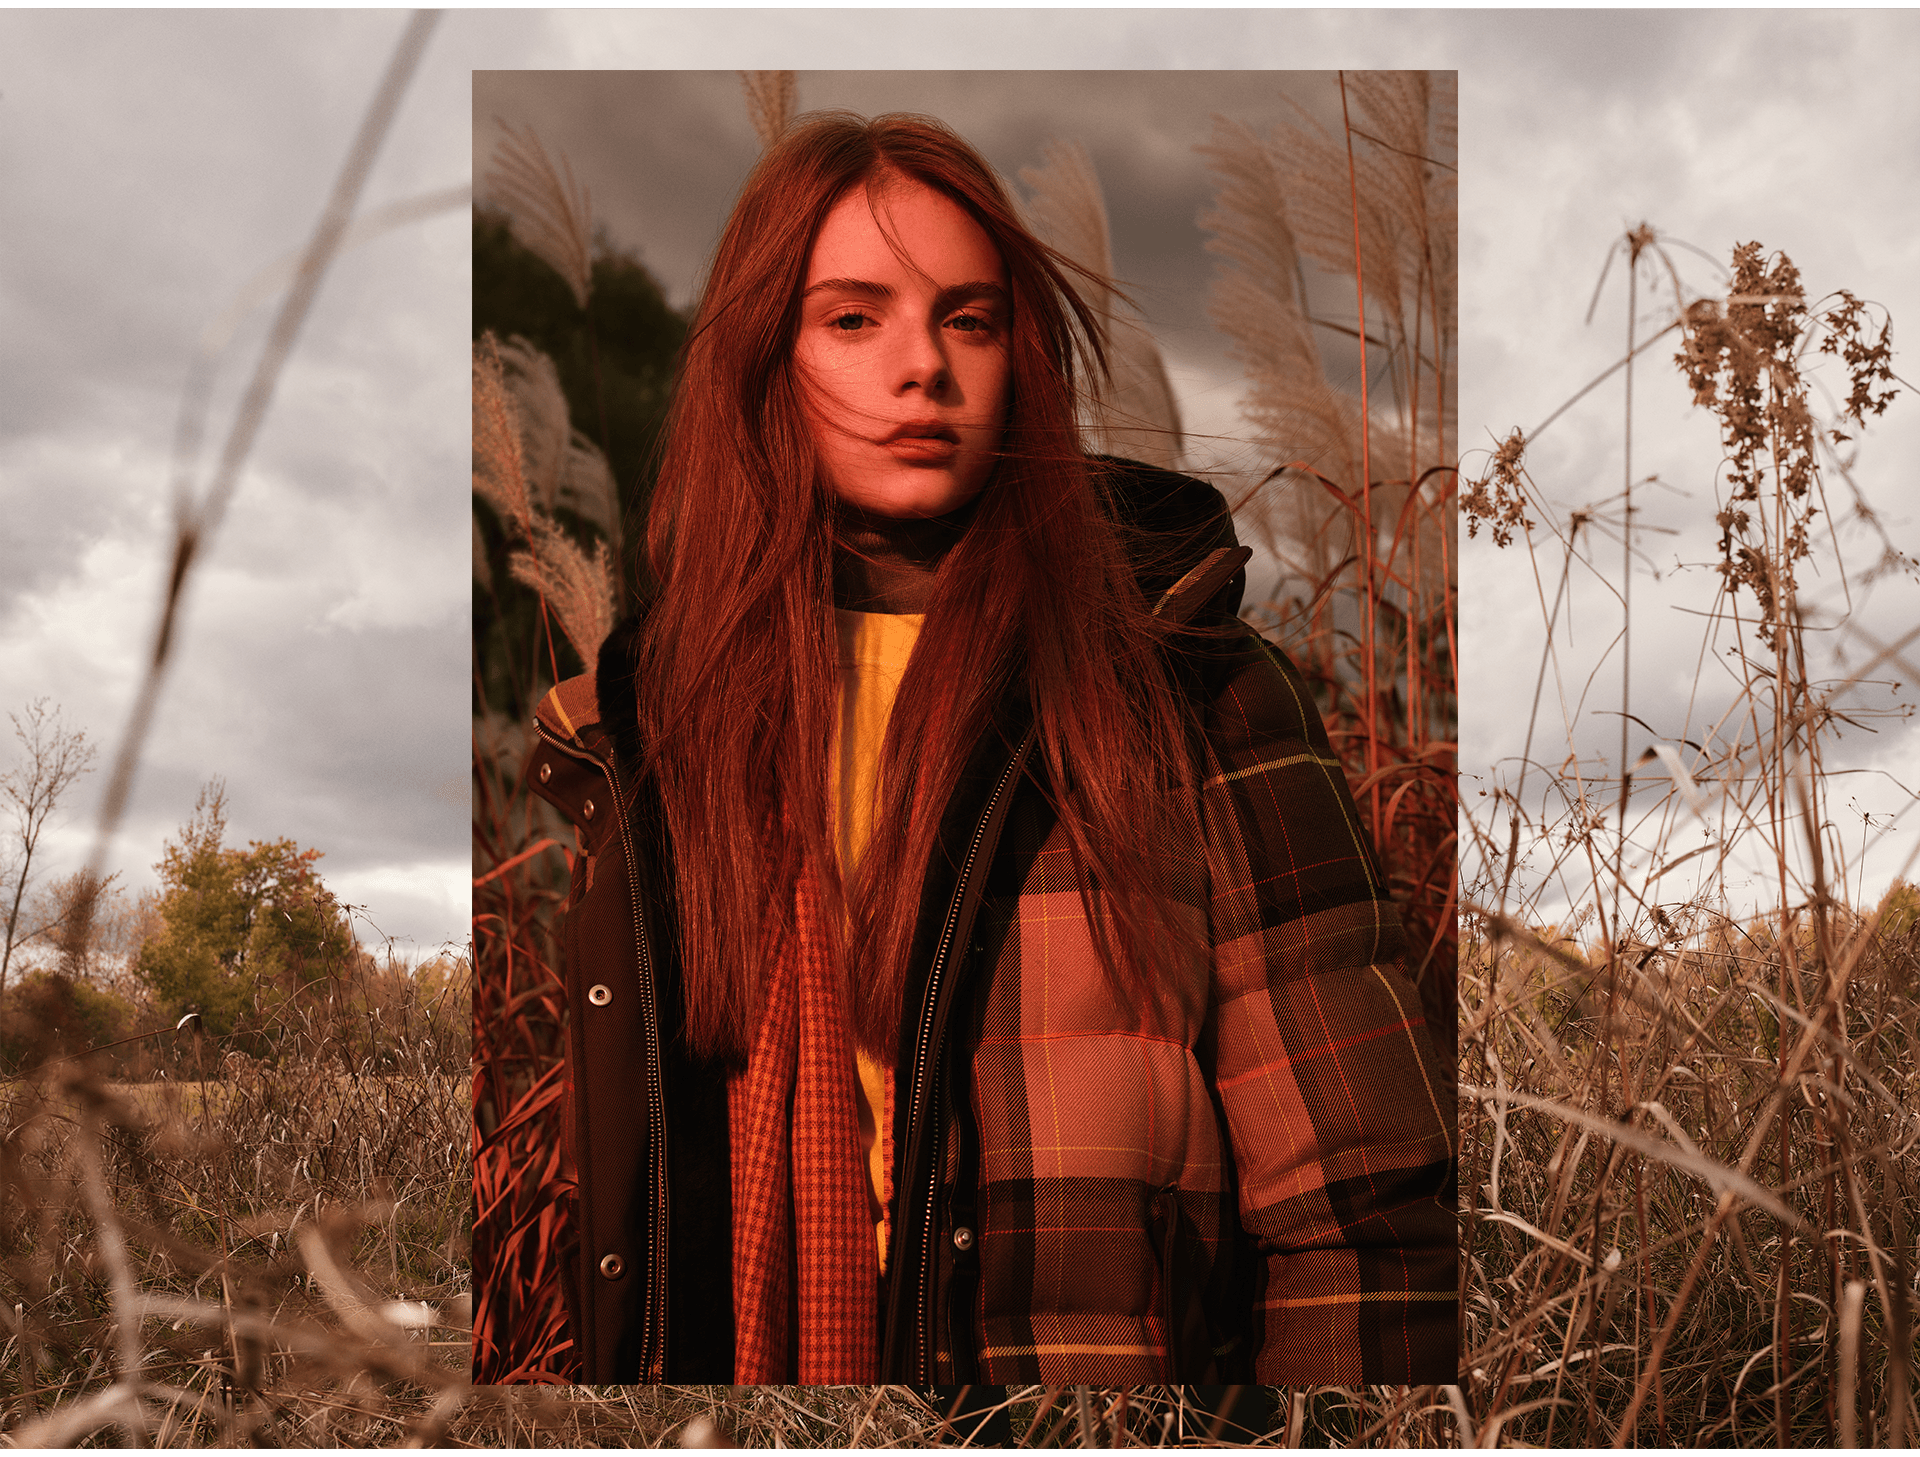 red head model wearing khaki winter coat standing in dry field looking at camera photographed by Maxyme G Delisle for Mackage